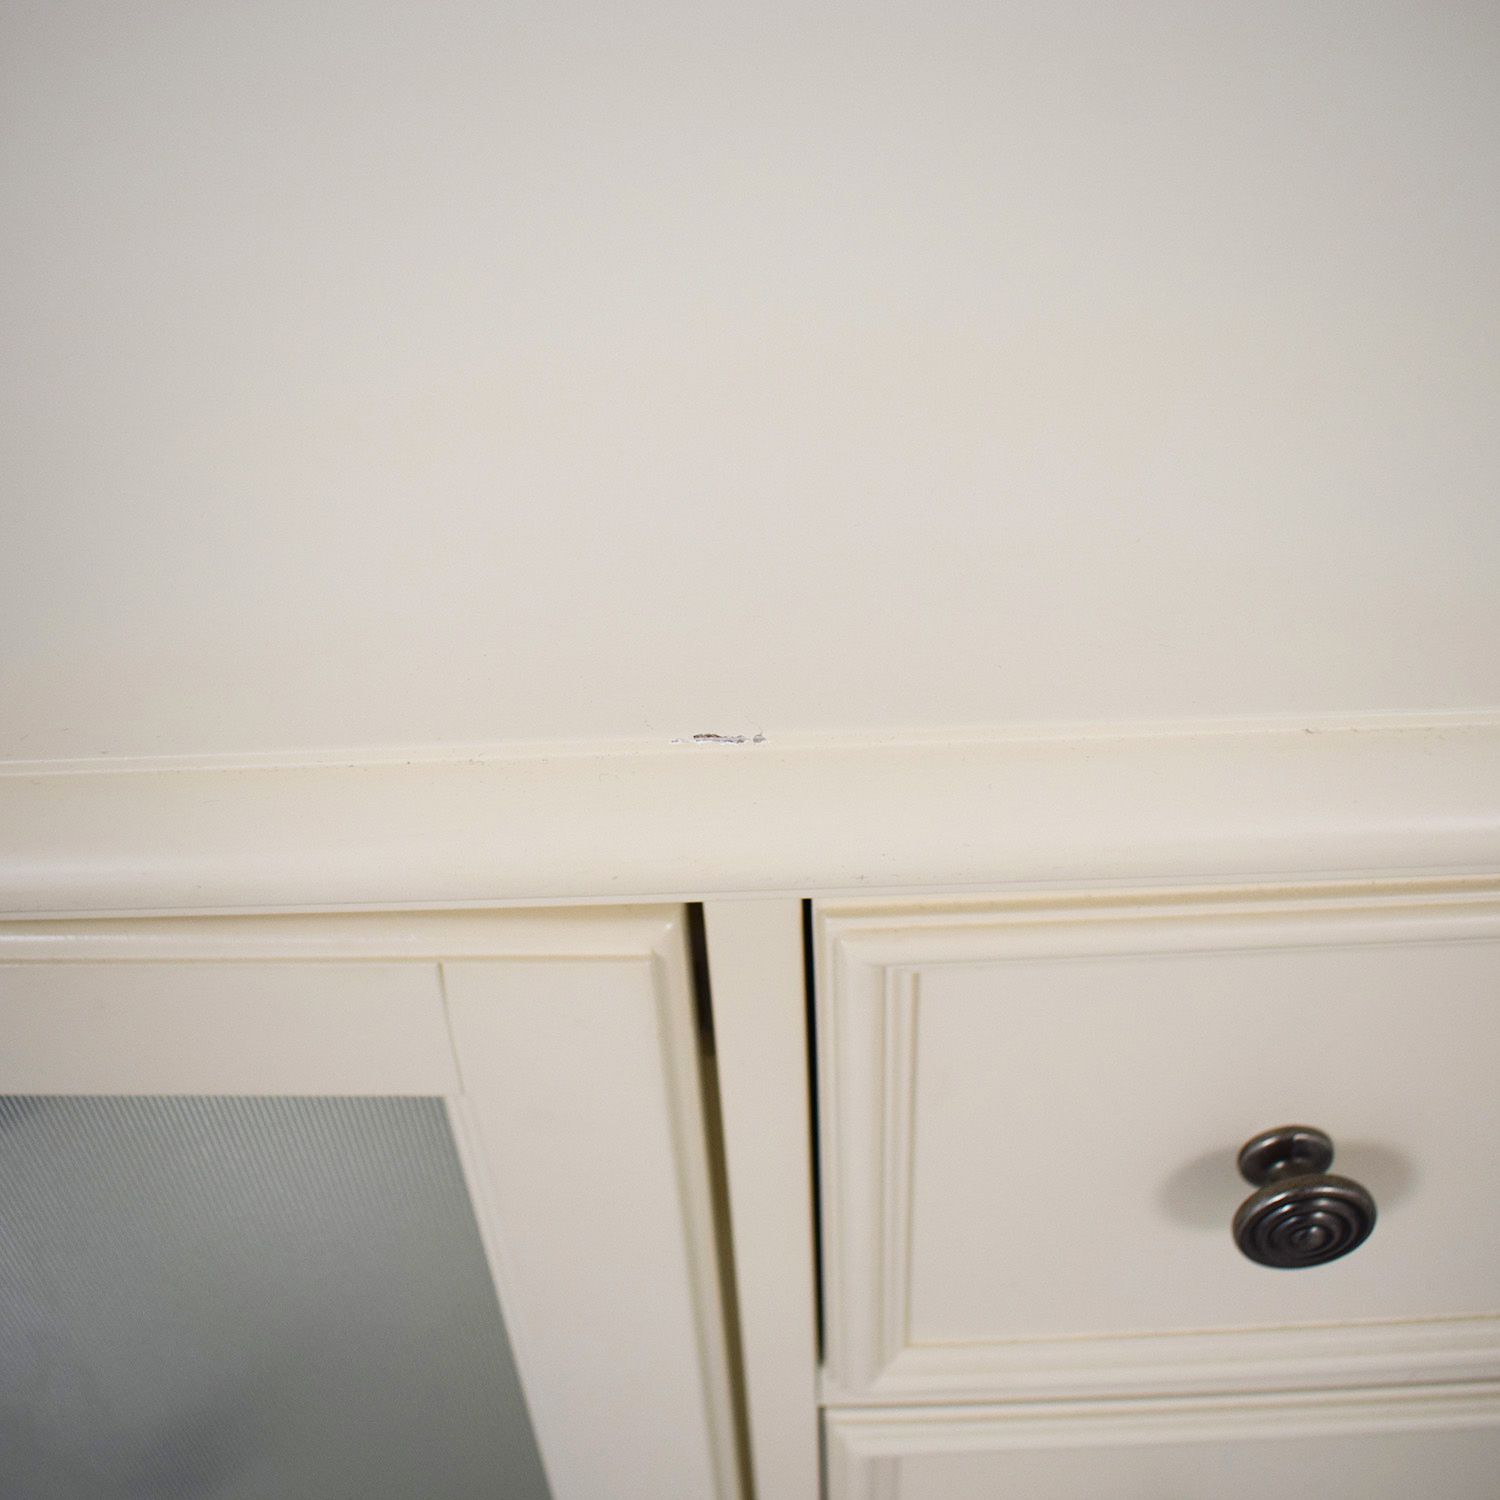 Raymour & Flanigan Raymour & Flanigan Somerset Bedroom Dresser off white